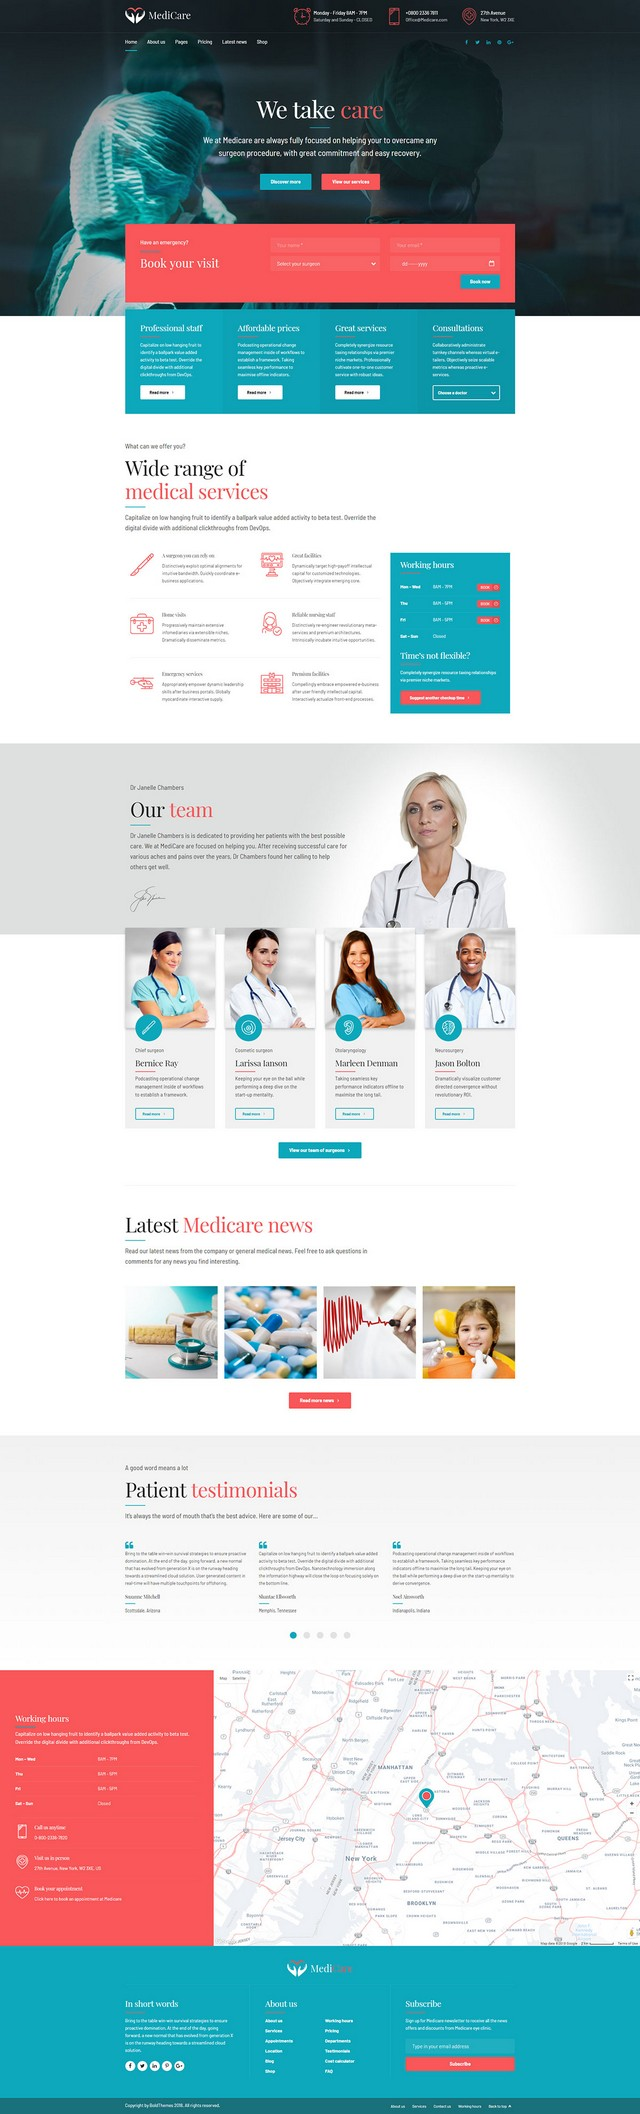 health and medical wordpress theme Medicare homepage layout for surgery clinic